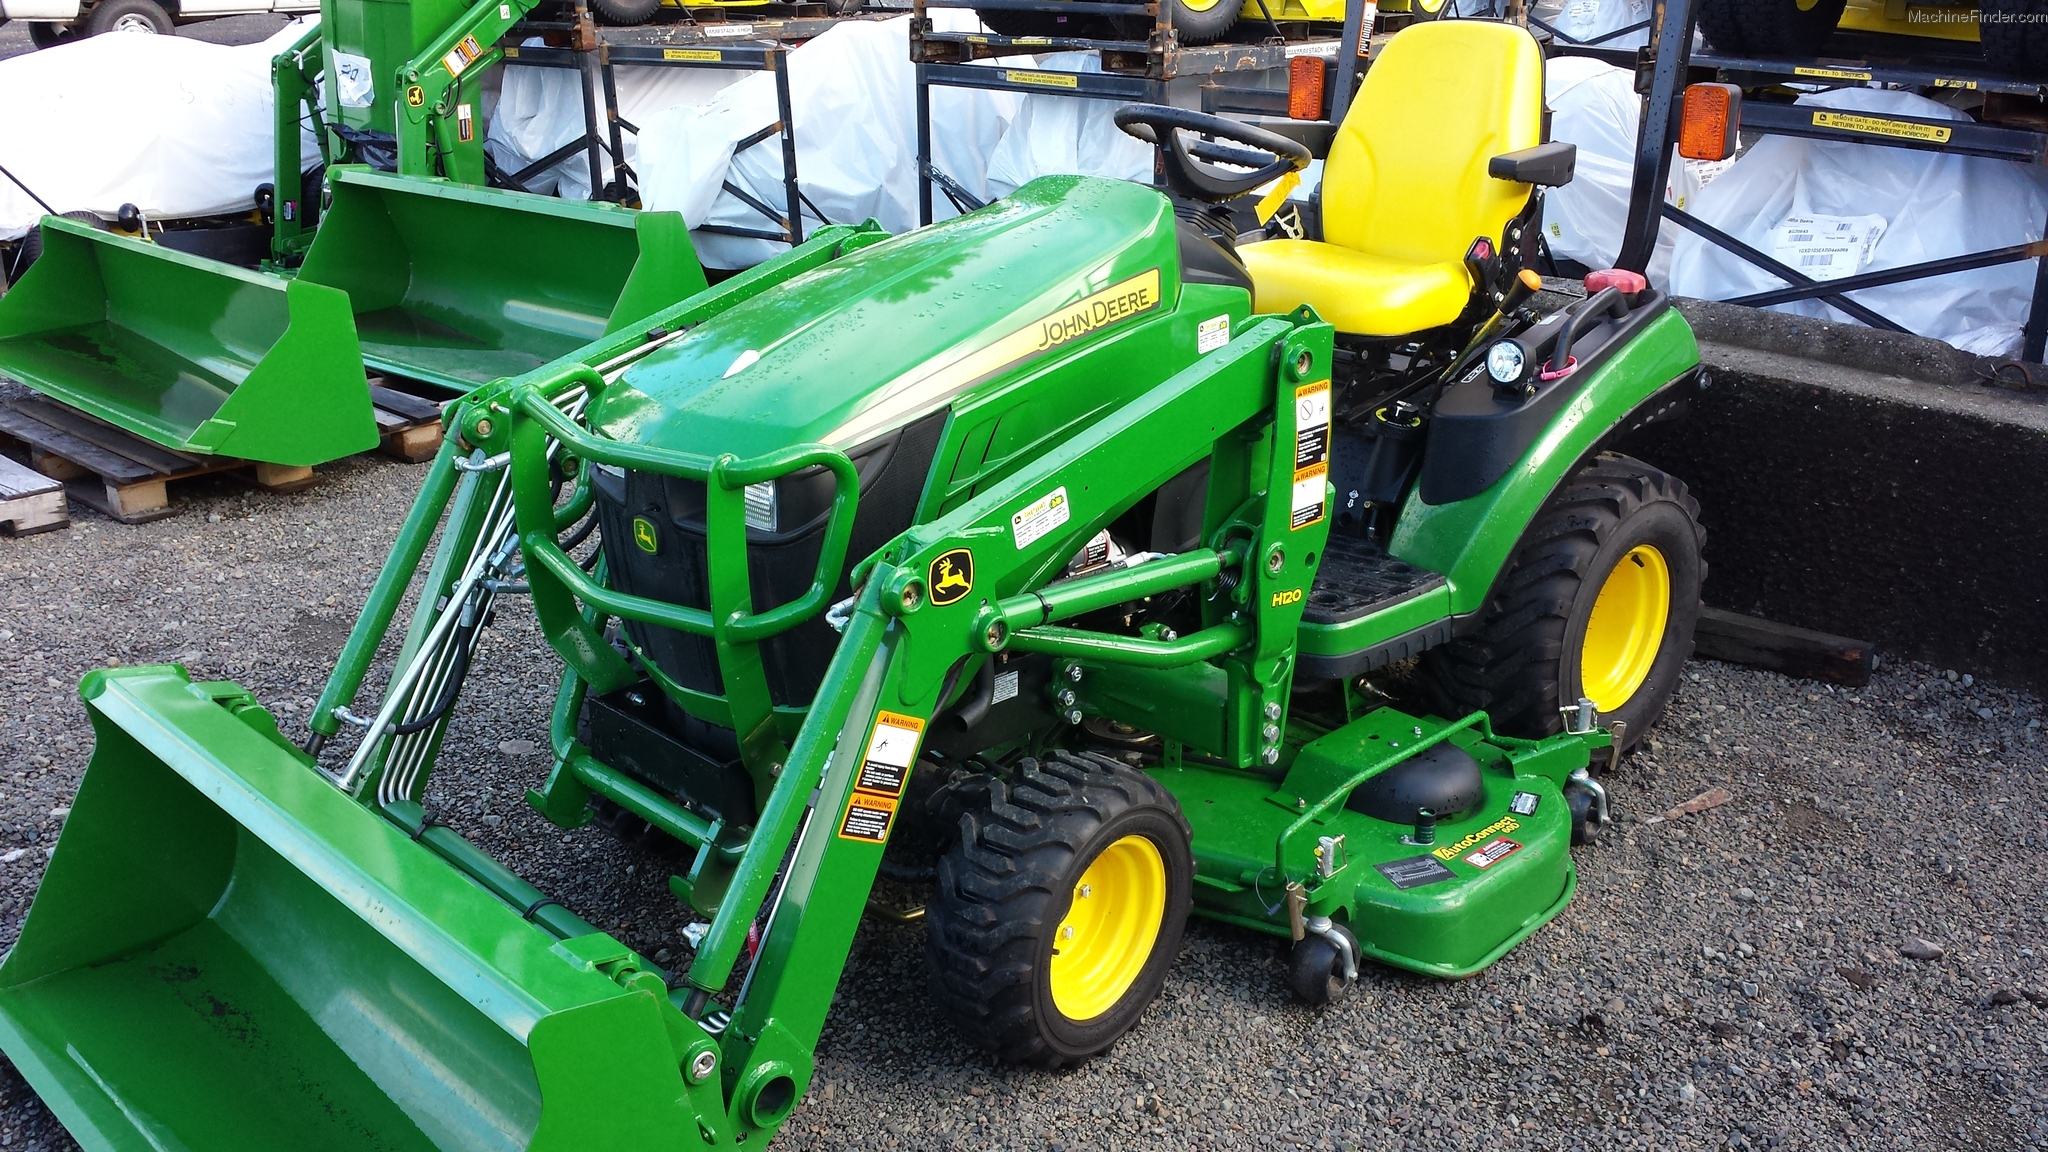 John Deere 1026r Attachments : Used farm agricultural equipment john deere machinefinder